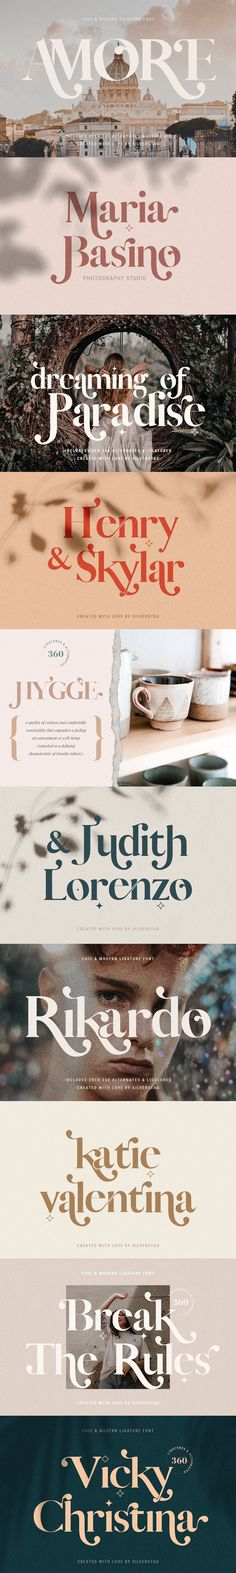 Ok, I can not even describe how excited I am to announce my new Vicky Christina Ligature Serif Font. Character Web, Best Serif Fonts, Wedding Mood Board, Uppercase And Lowercase, Social Media Template, Restaurant Design, Swirls, How To Draw Hands, Stationery